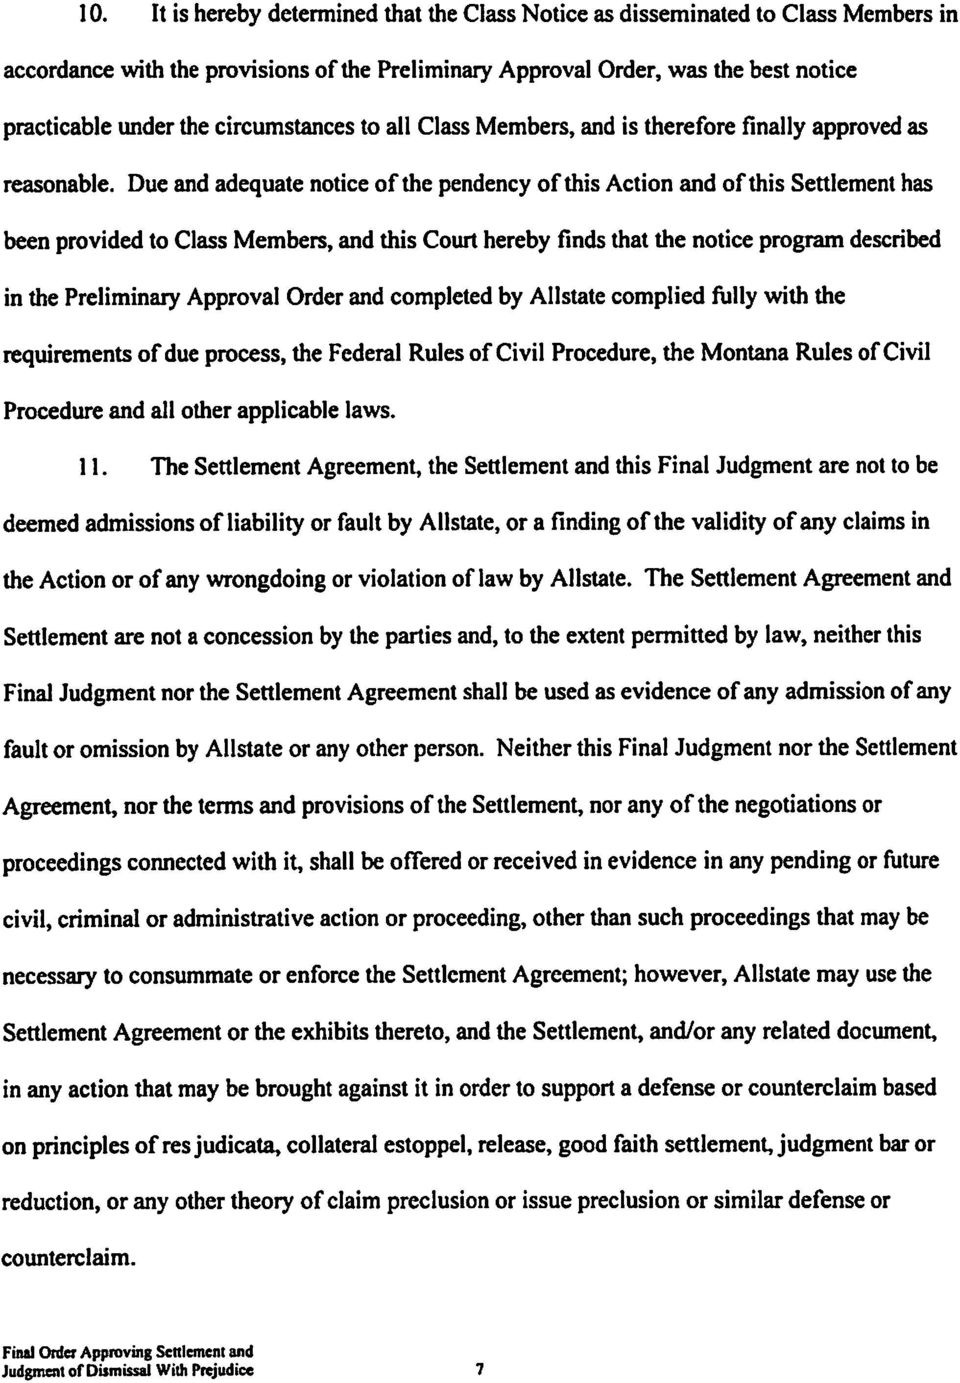 Due and adequate notice of the pendency of this Action and of this Settlement has been provided to Class Members, and this Court hereby finds that the notice program described in the Preliminary